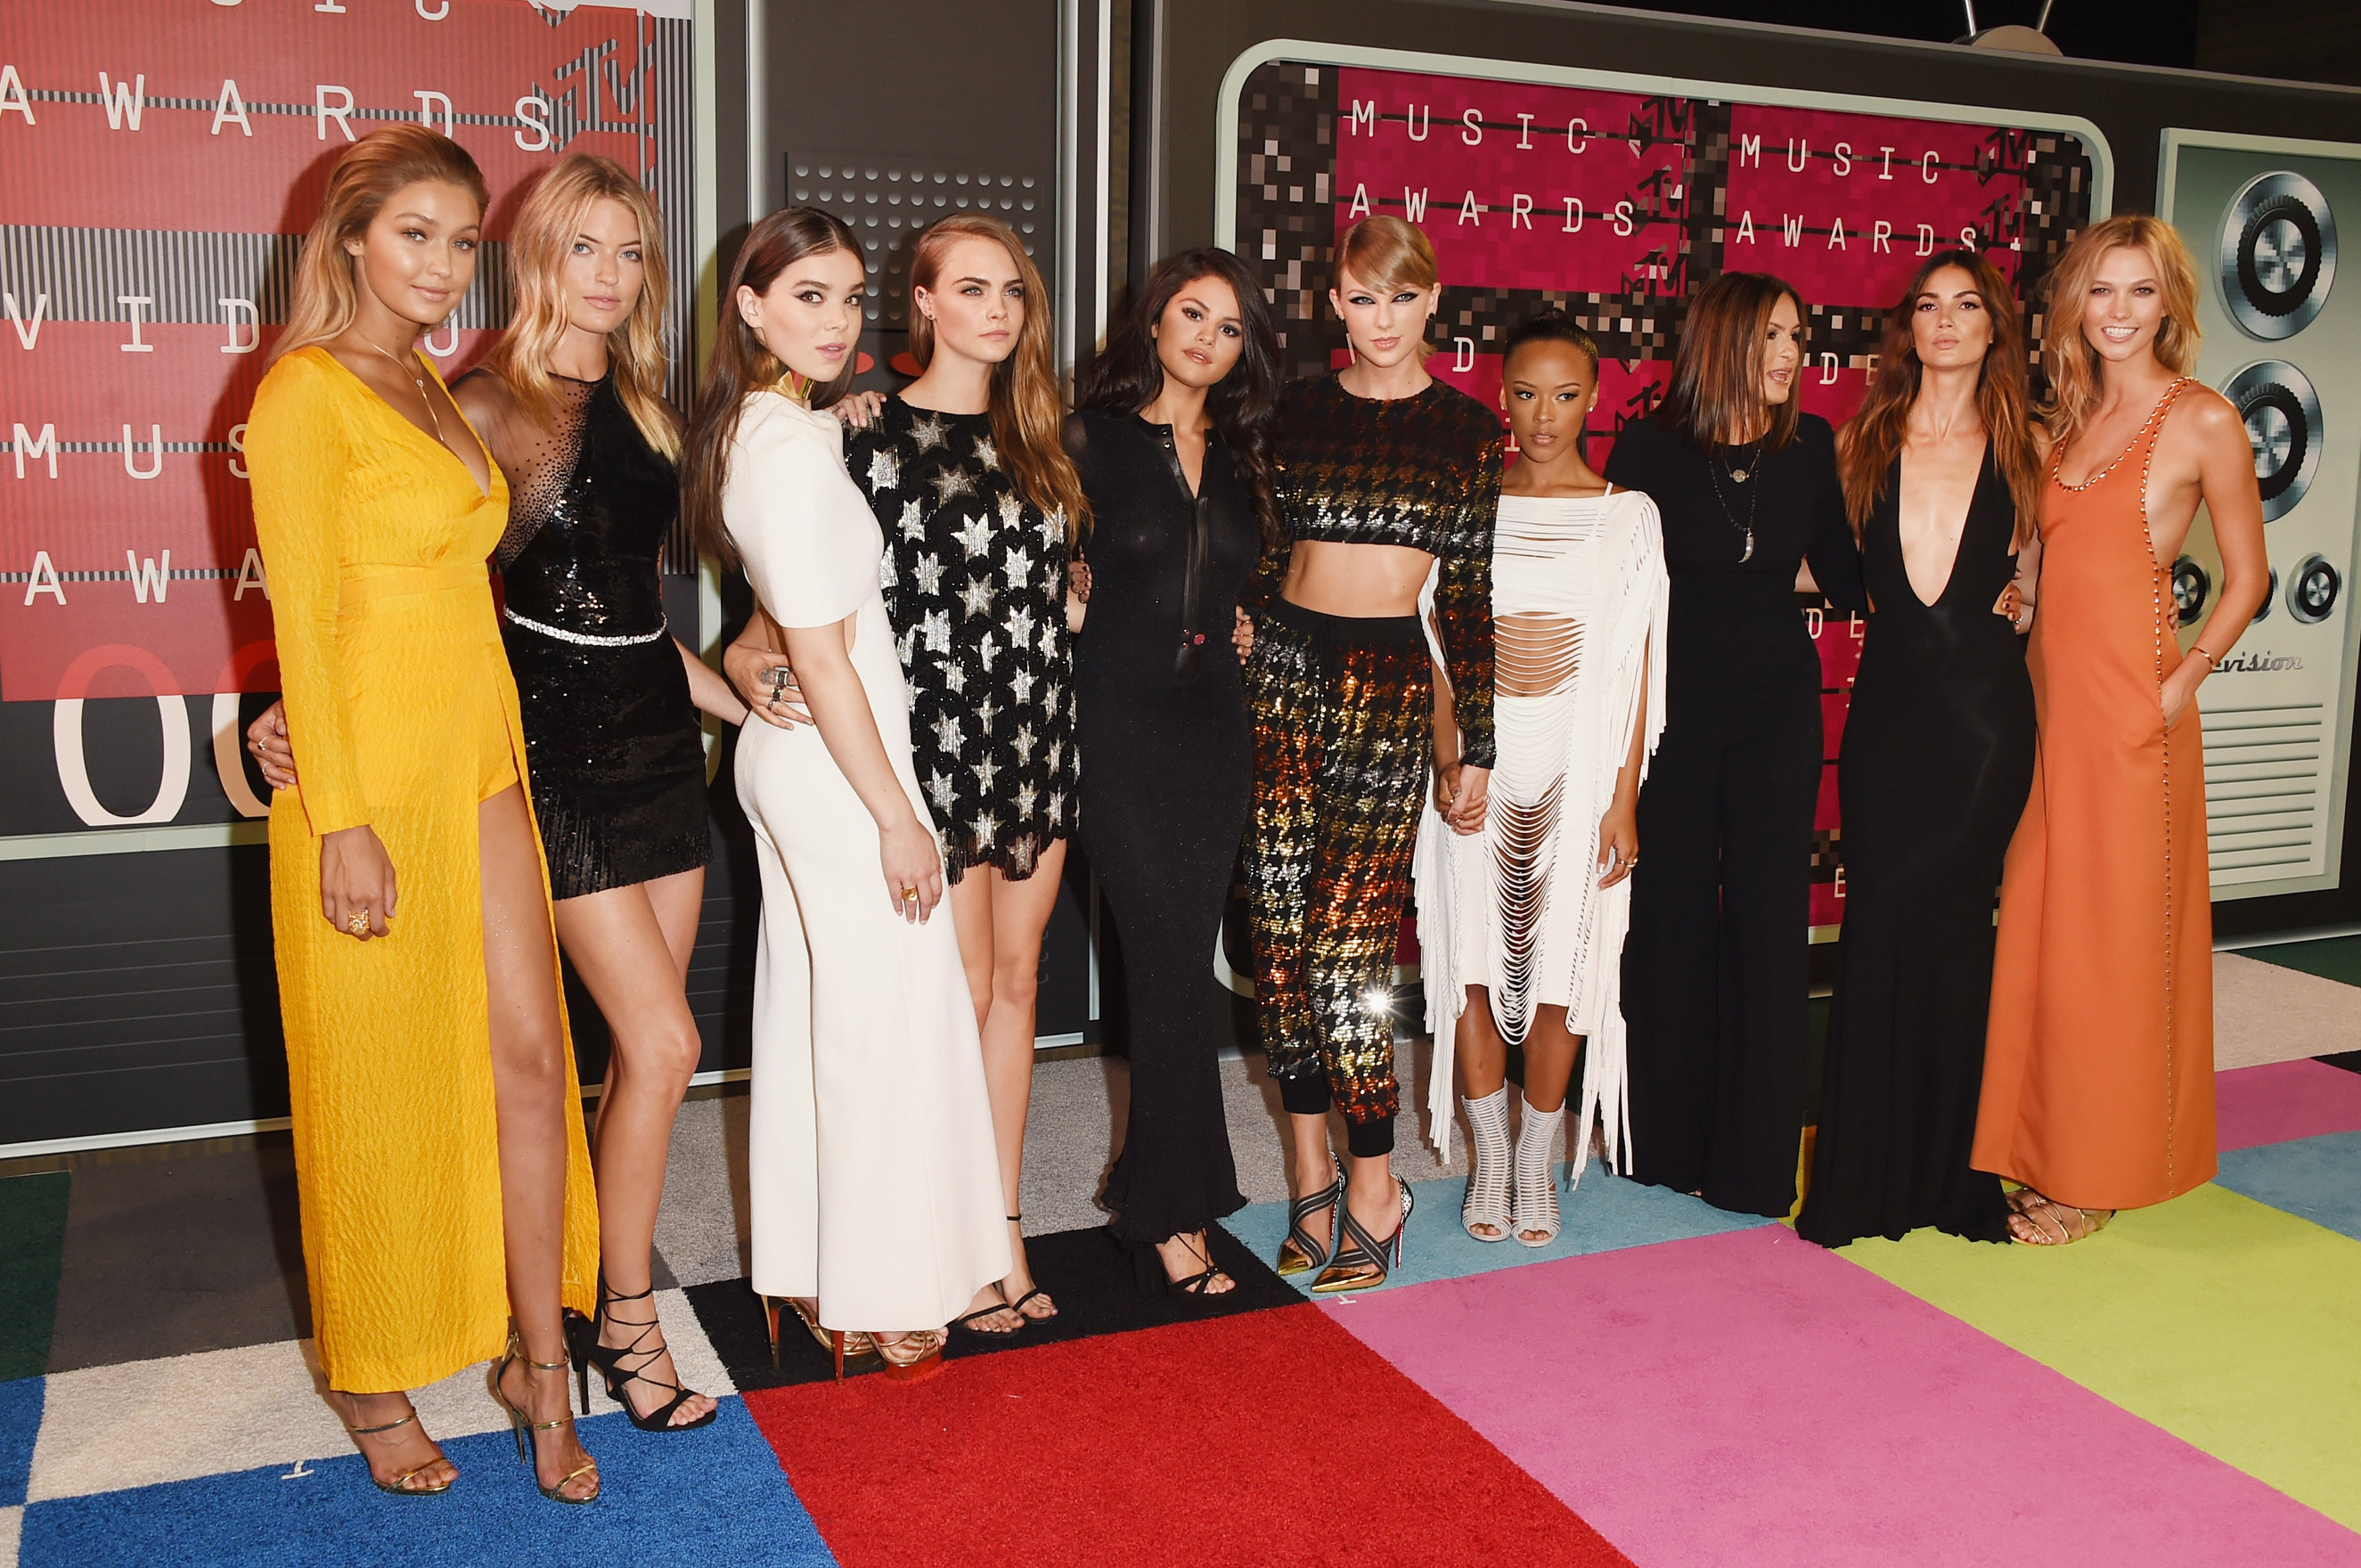 From left: Models Gigi Hadid, Martha Hunt, actress Hailee Steinfeld, model Cara Delevingne, Selena Gomez, Taylor Swift, model Serayah, Mariska Hargitay, models Lily Aldridge and Karlie Kloss attend the 2015 MTV Video Music Awards at Microsoft Theater on Aug. 30, 2015 in Los Angeles.